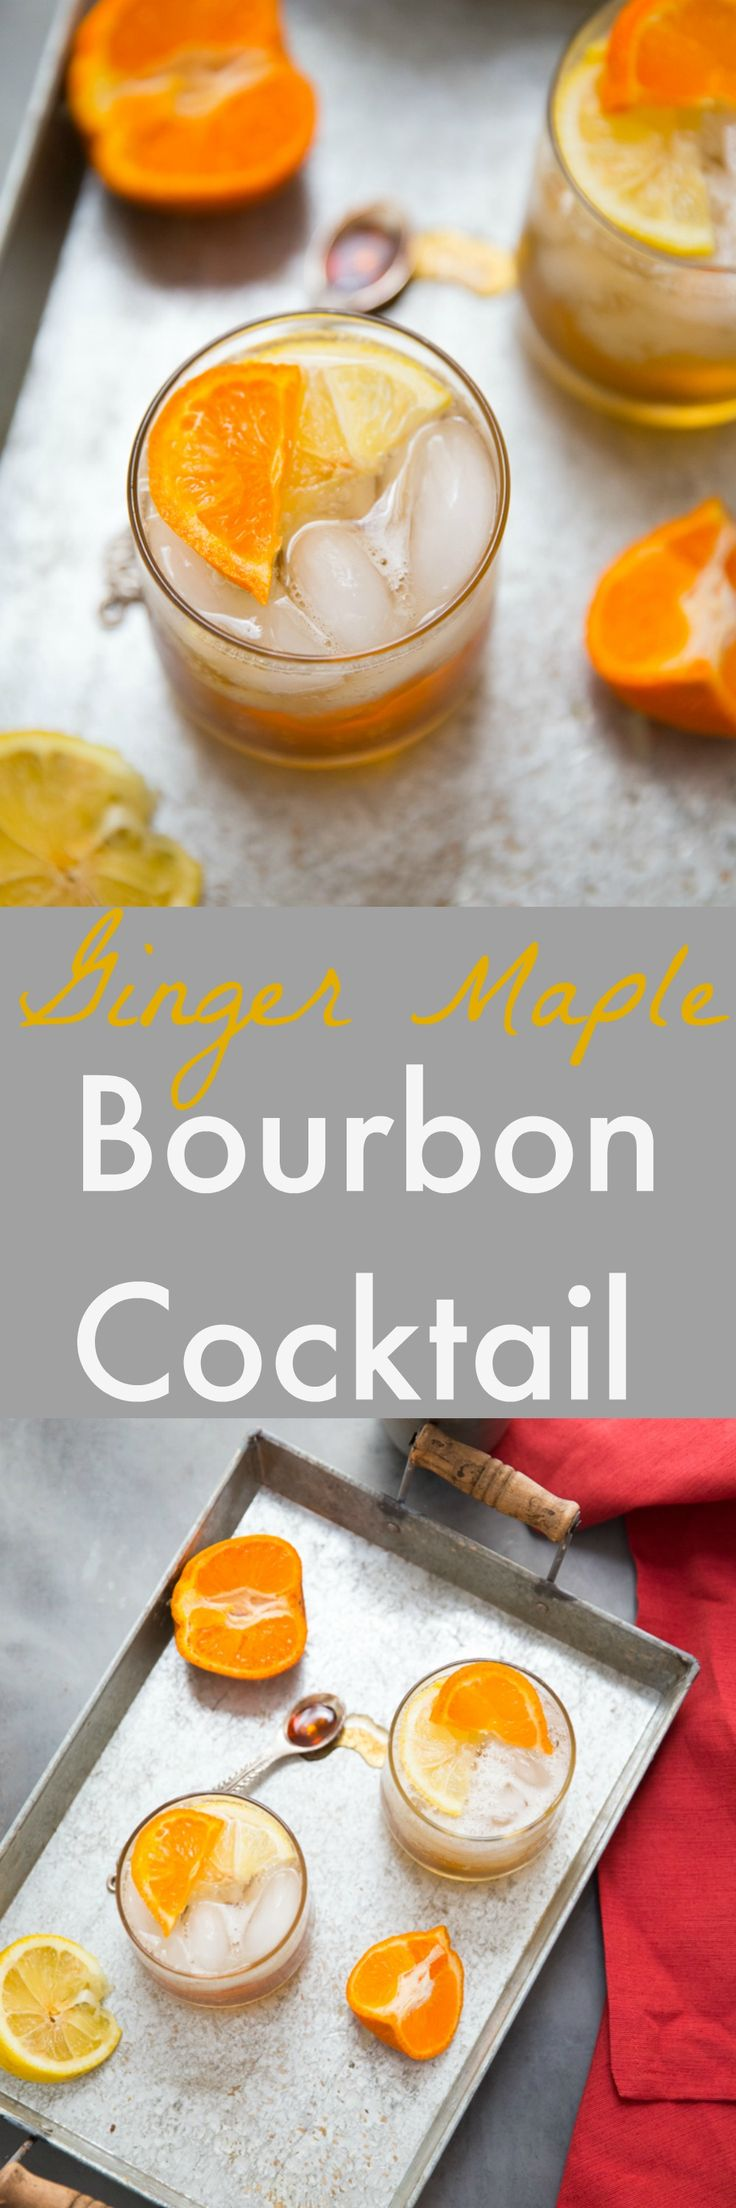 Pure maple syrup brings earthy sweetness to the bourbon cocktail. Citrus keeps the taste fresh while ginger adds a little bite. via @Lemonsforlulu